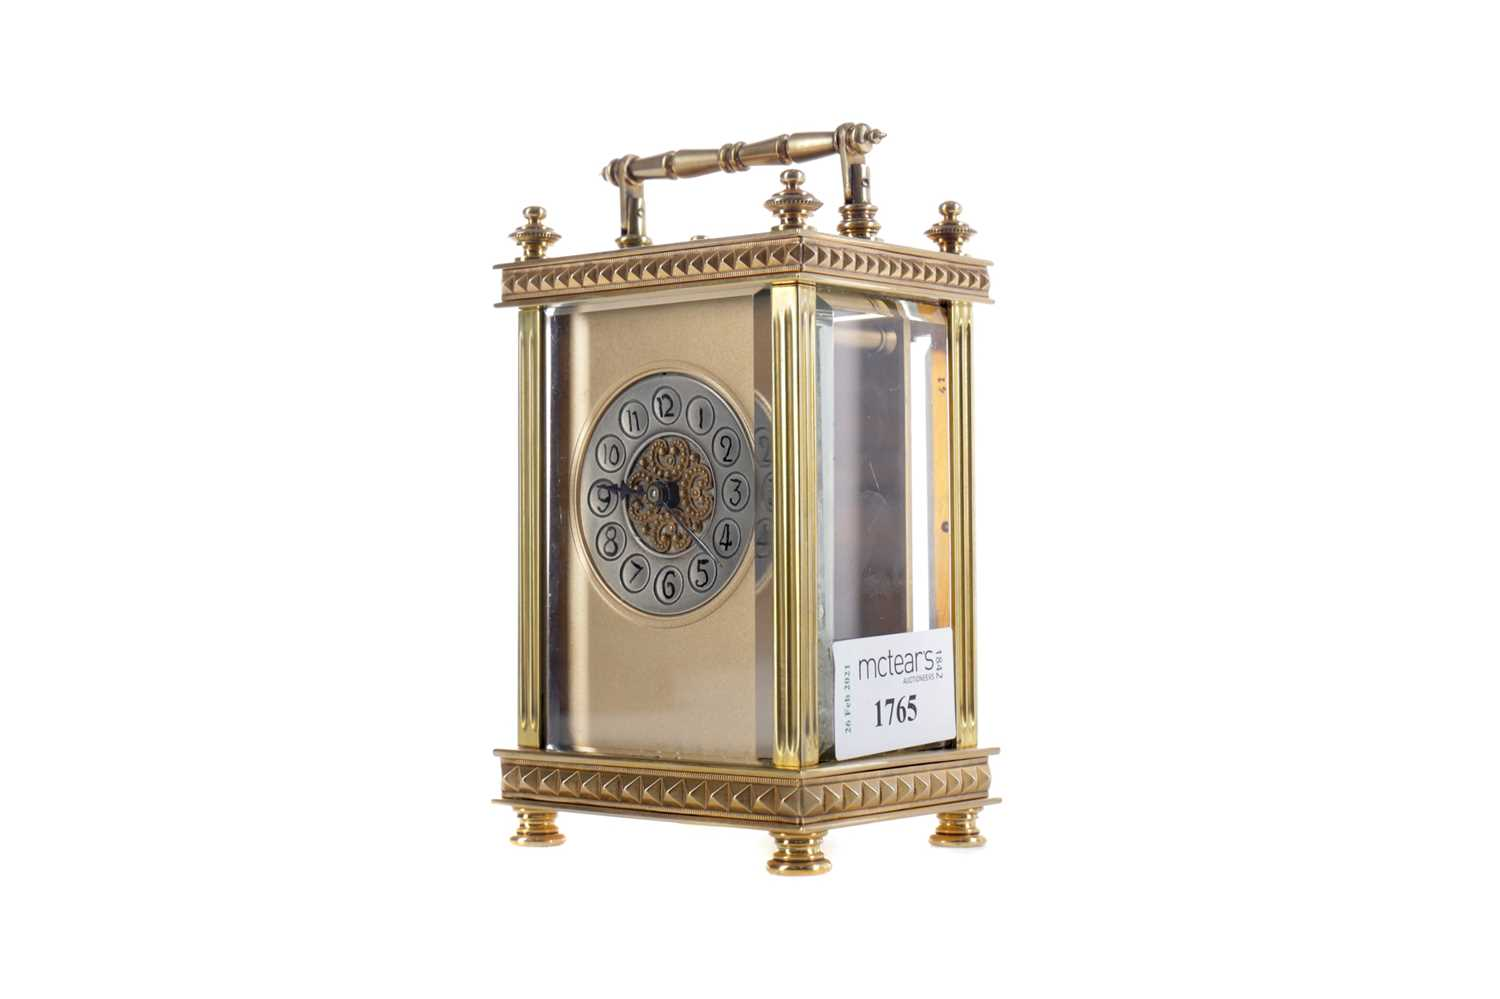 Lot 1765 - AN EARLY 20TH CENTURY CARRIAGE CLOCK